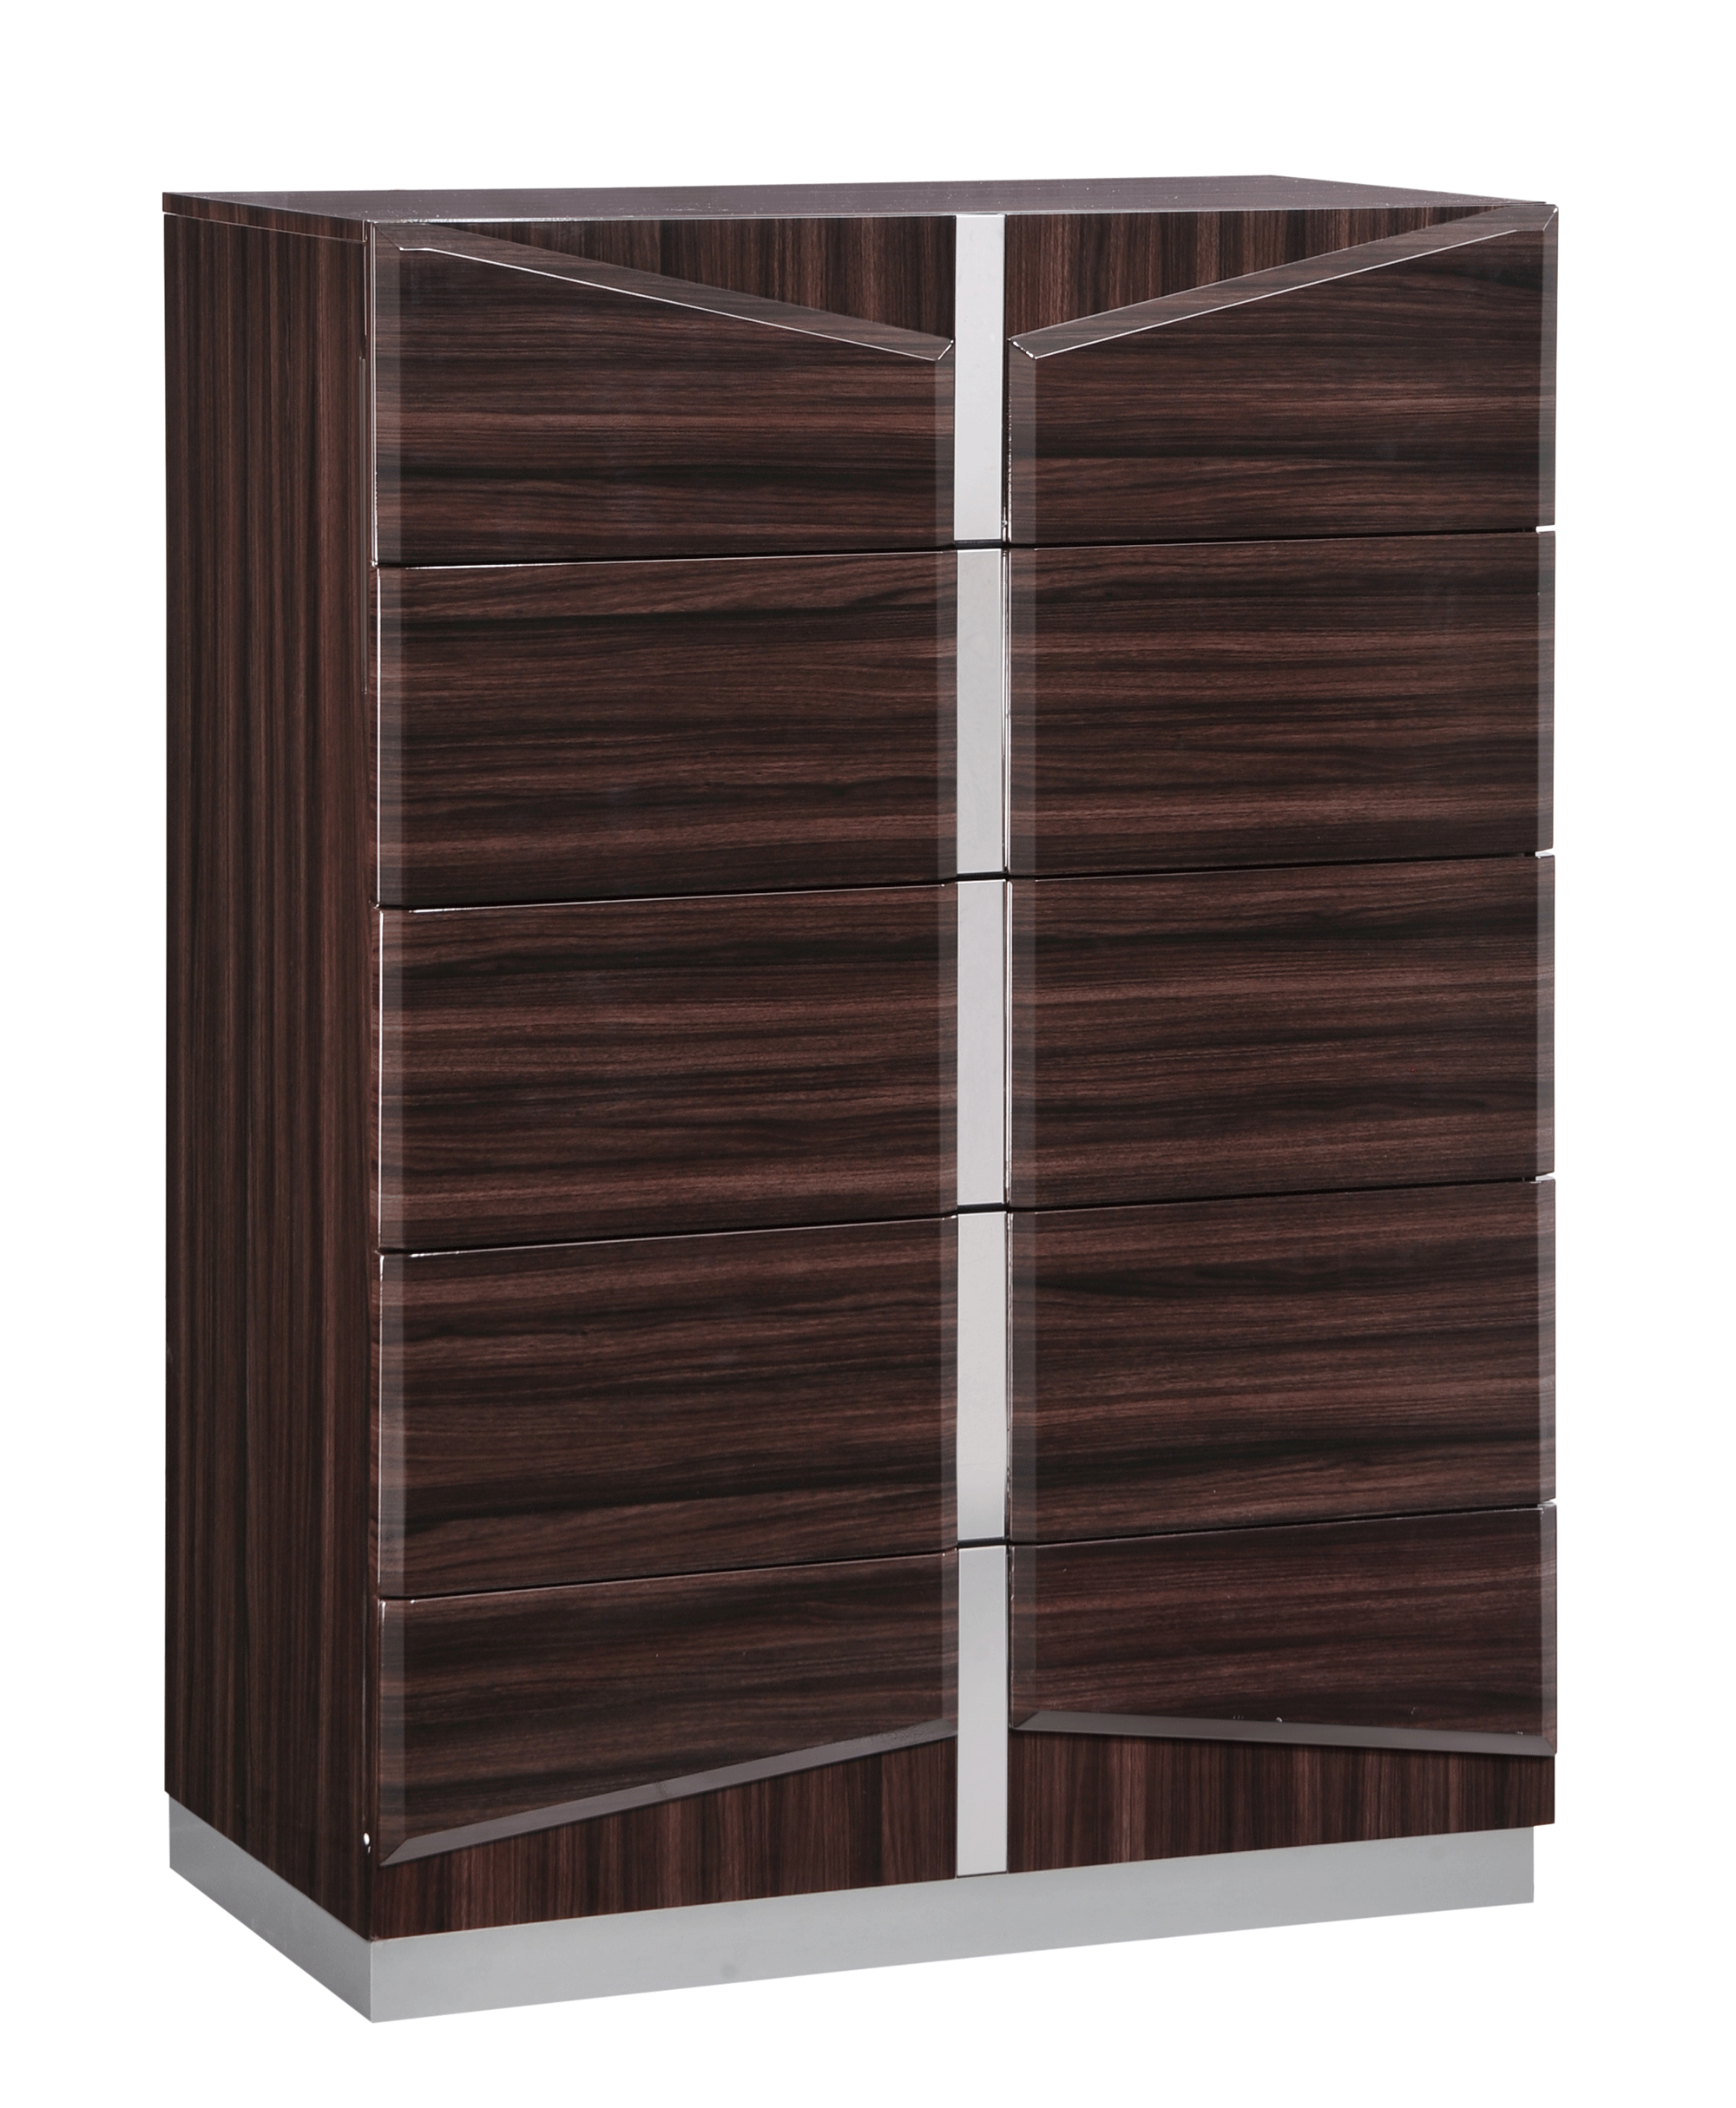 Furniture Stunning Display Of Wood Grain In A: Sienna Wood Grain Chest By Global Furniture